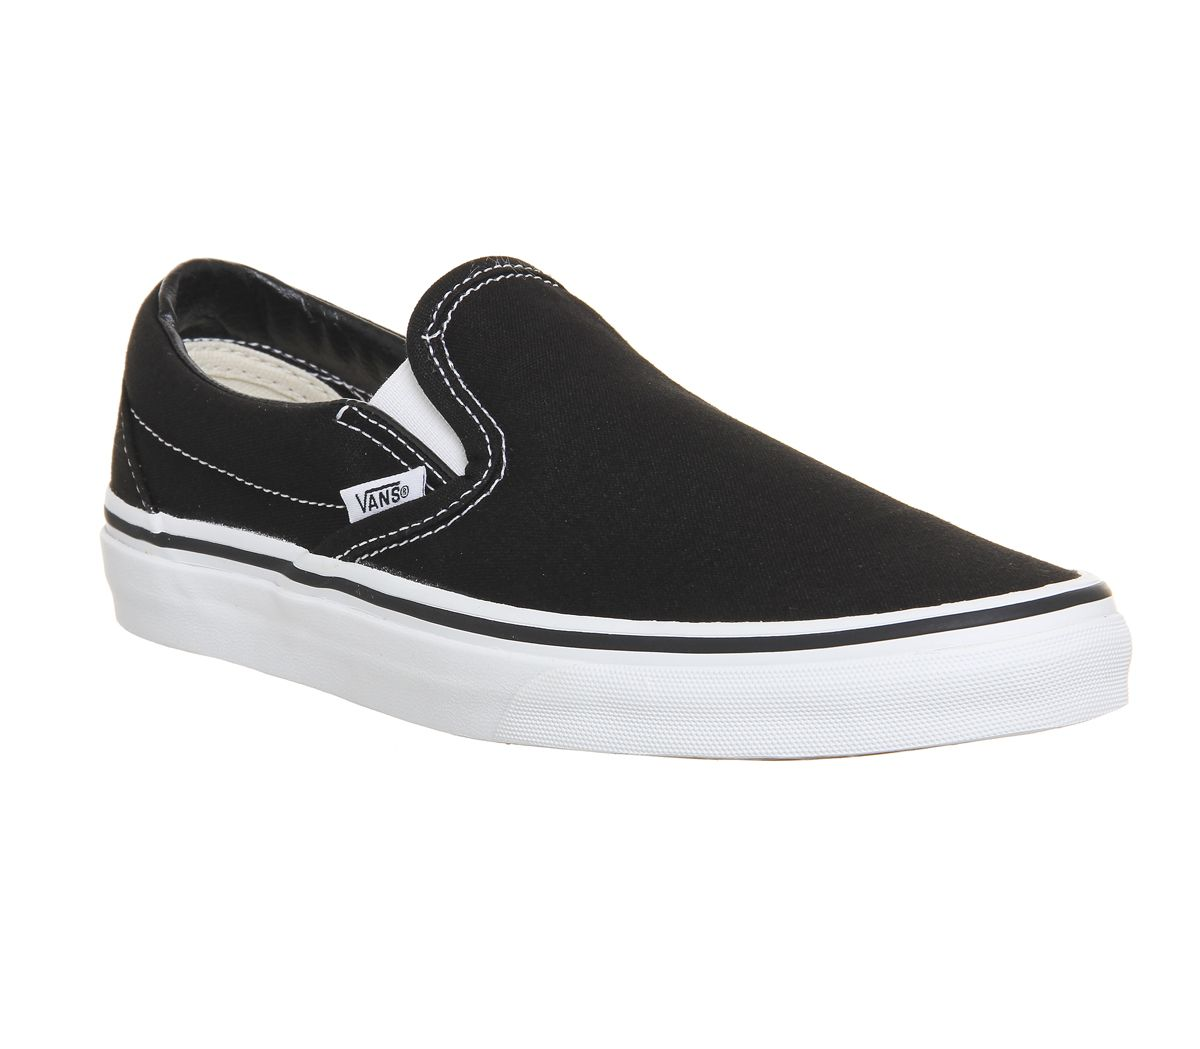 78881b483b Vans Classic Slip On Trainers Black White - Unisex Sports